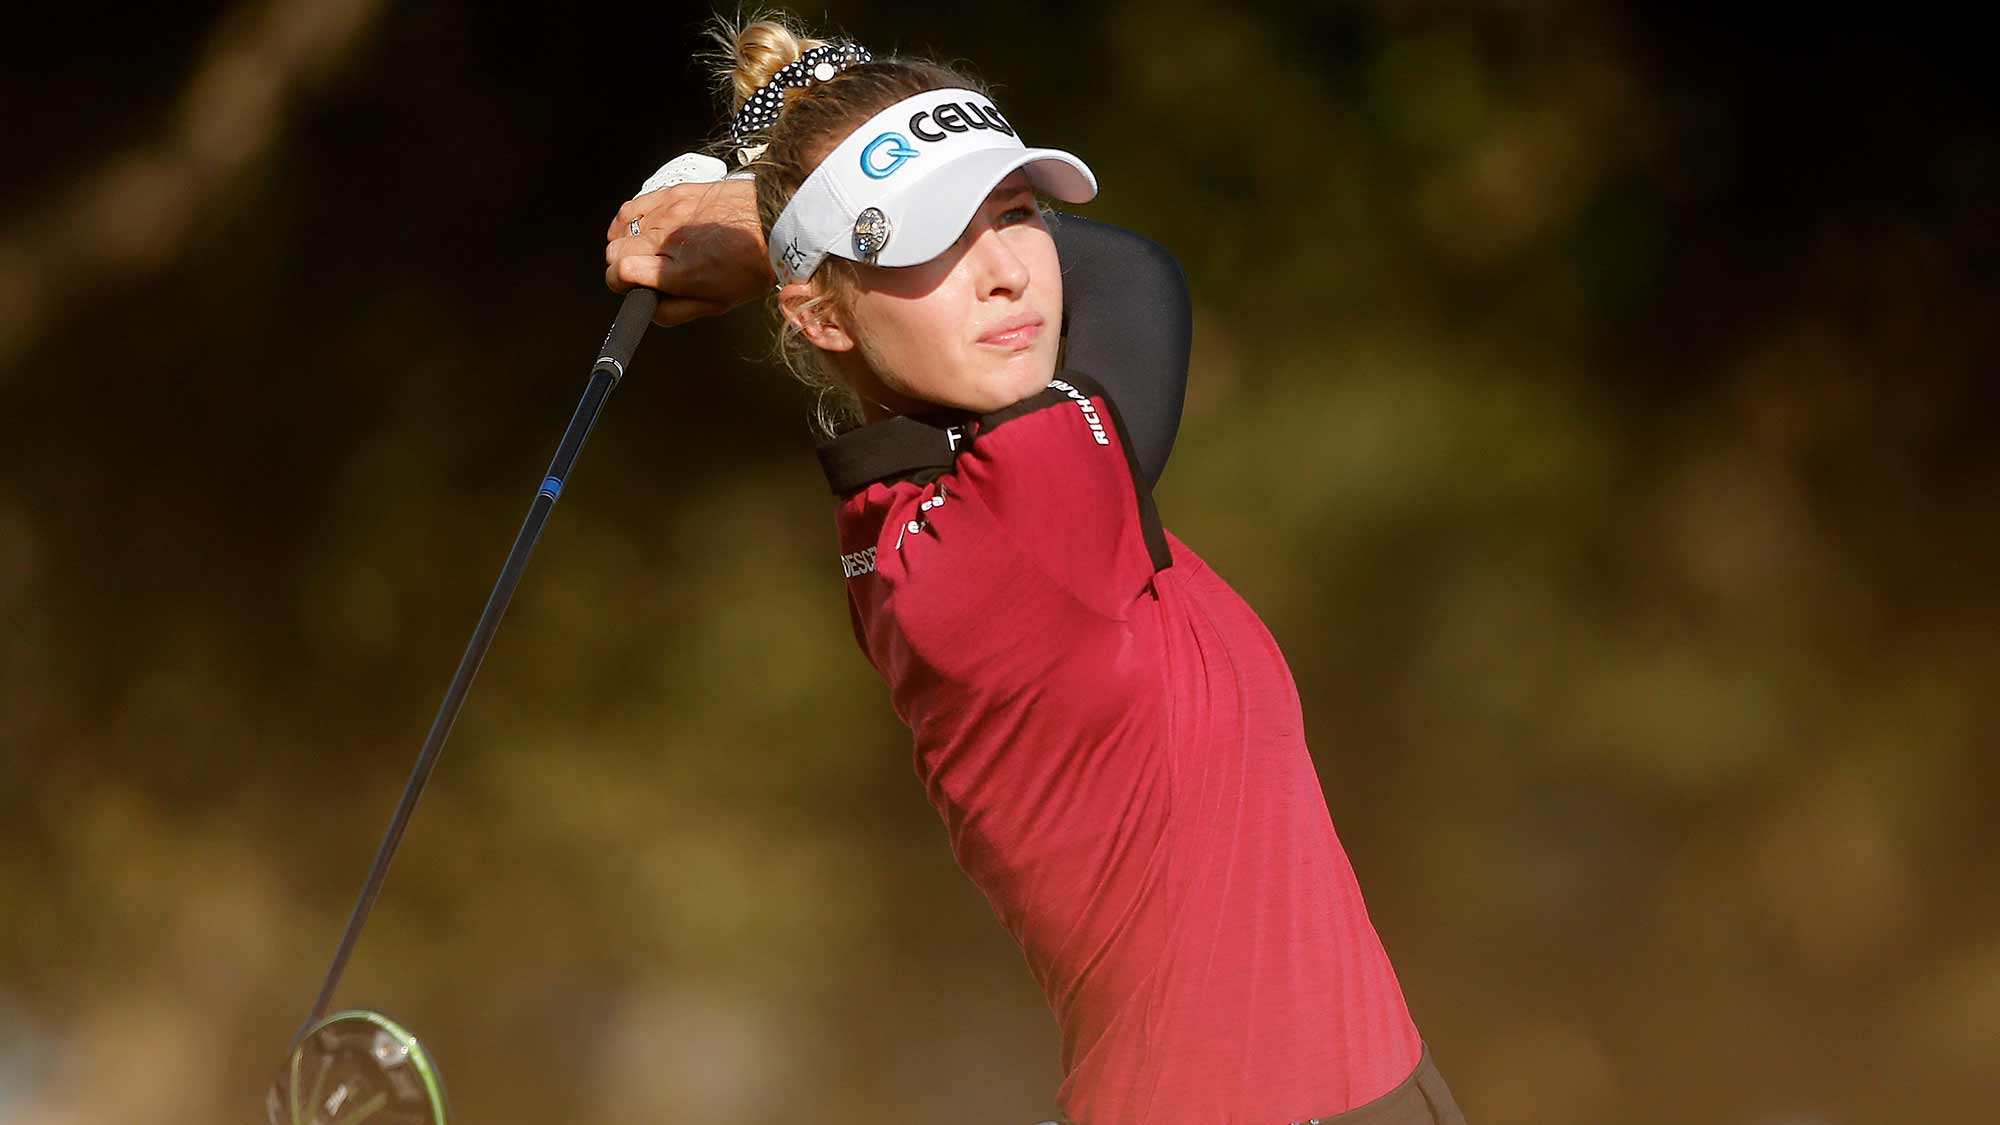 Nelly Korda of the United States plays her shot from the 18th tee during the final round of the CME Group Tour Championship at Tiburon Golf Club on November 24, 2019 in Naples, Florida